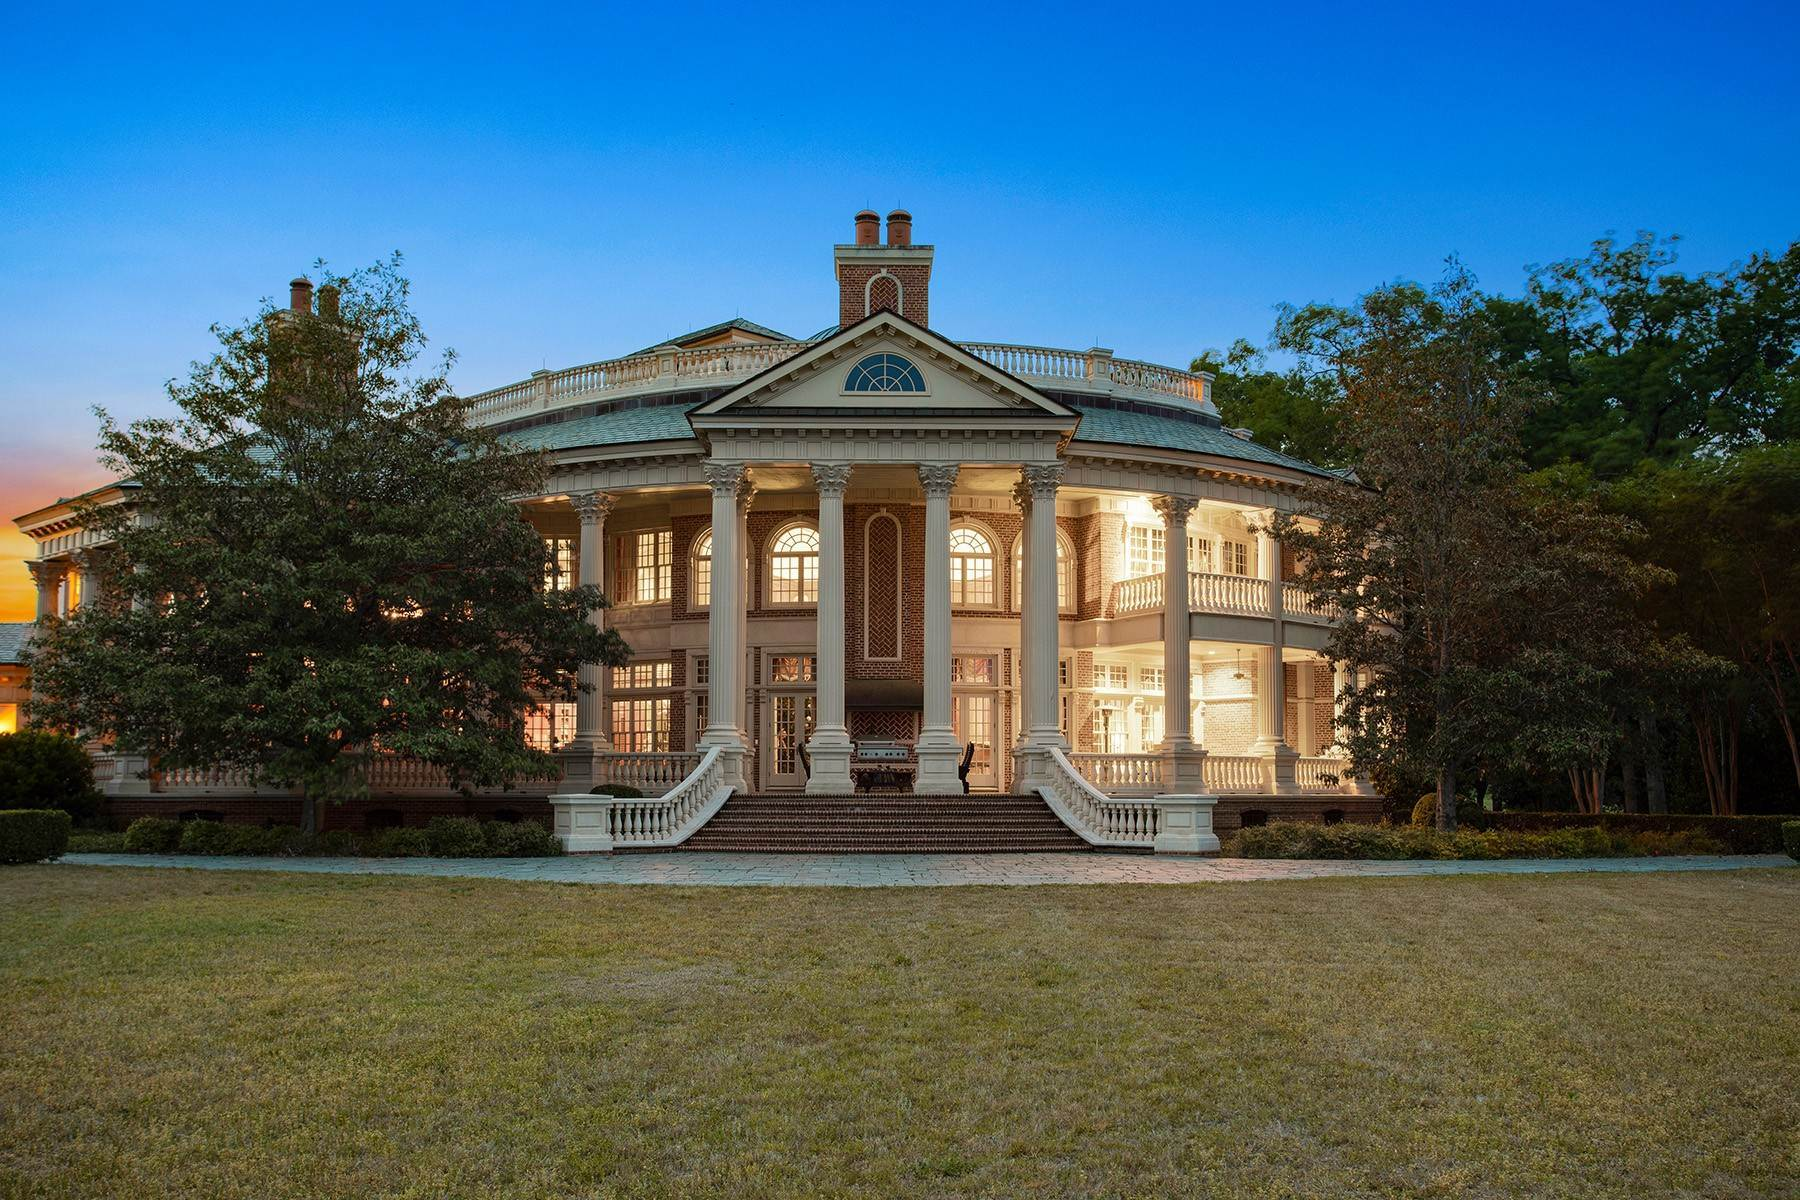 Single Family Homes for Sale at The Great Hill Plantation Established in 1873 5327 US Highway 41 South Bolingbroke, Georgia 31004 United States